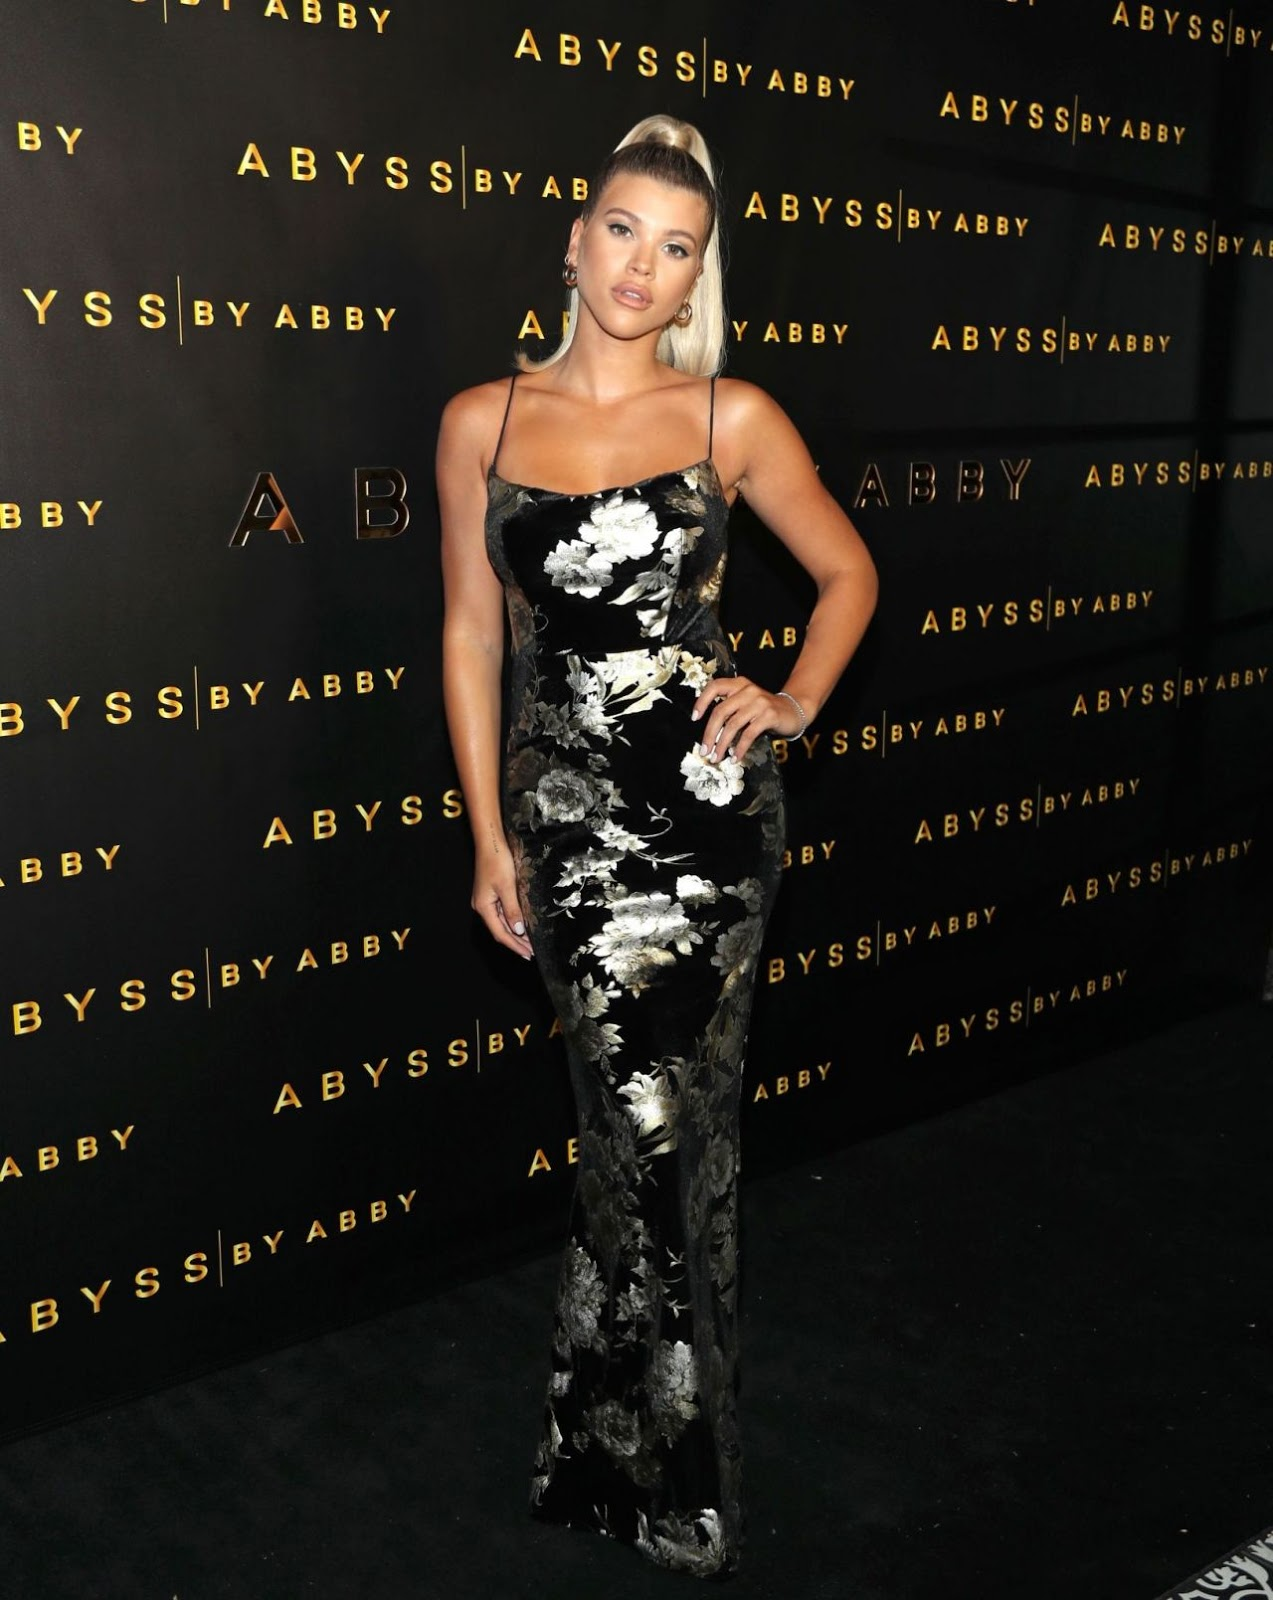 Sofia Richie shows off slender torso at the Abyss by Abby launch in LA